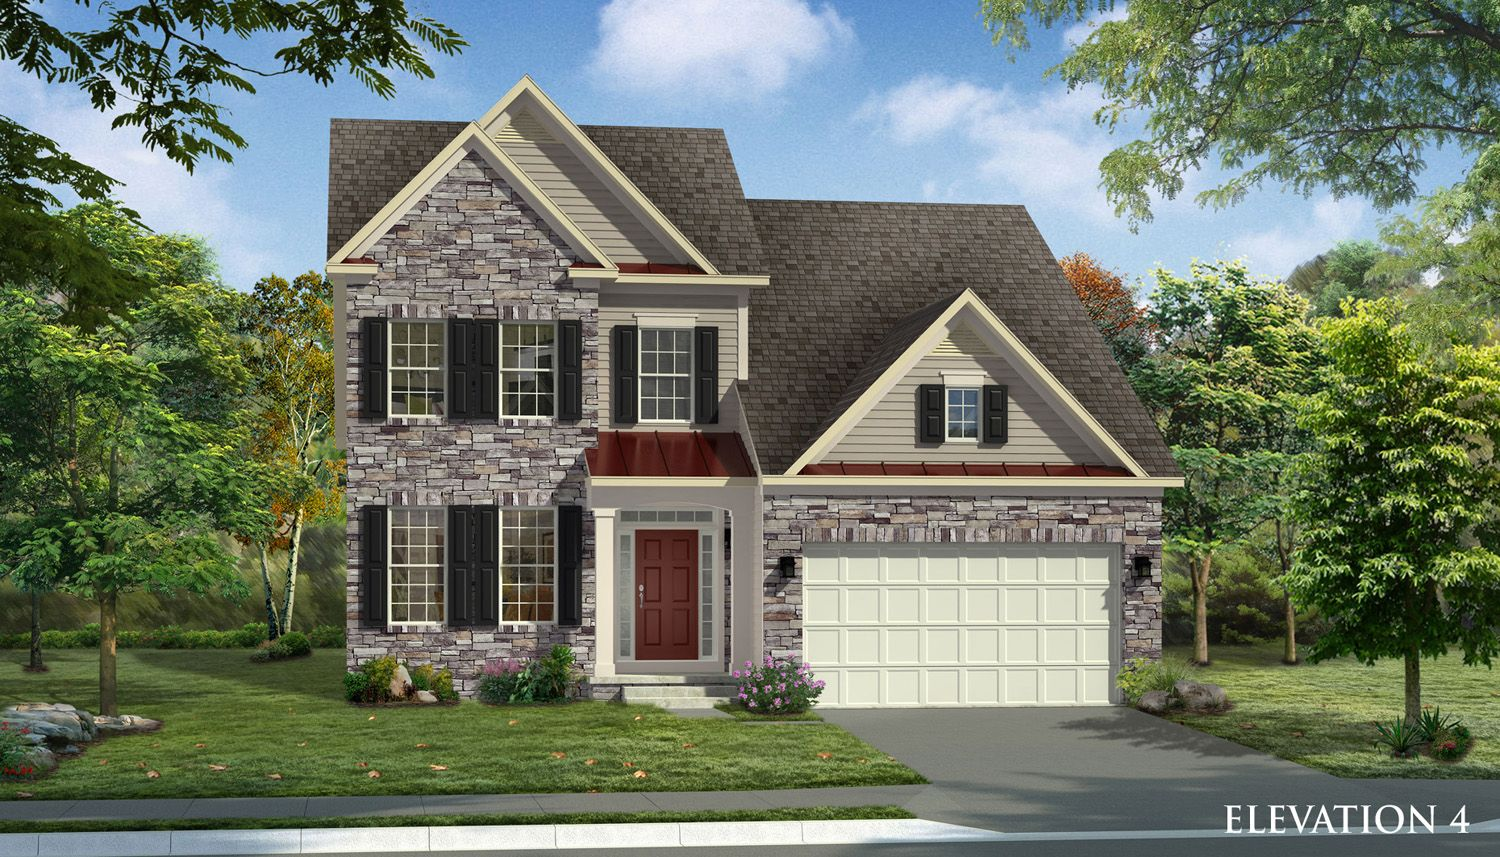 Unifamiliar por un Venta en Glenn Dale Crossing Single Family Homes - Gregory Ii 7771 Hubble Drive Lanham, Maryland 20706 United States